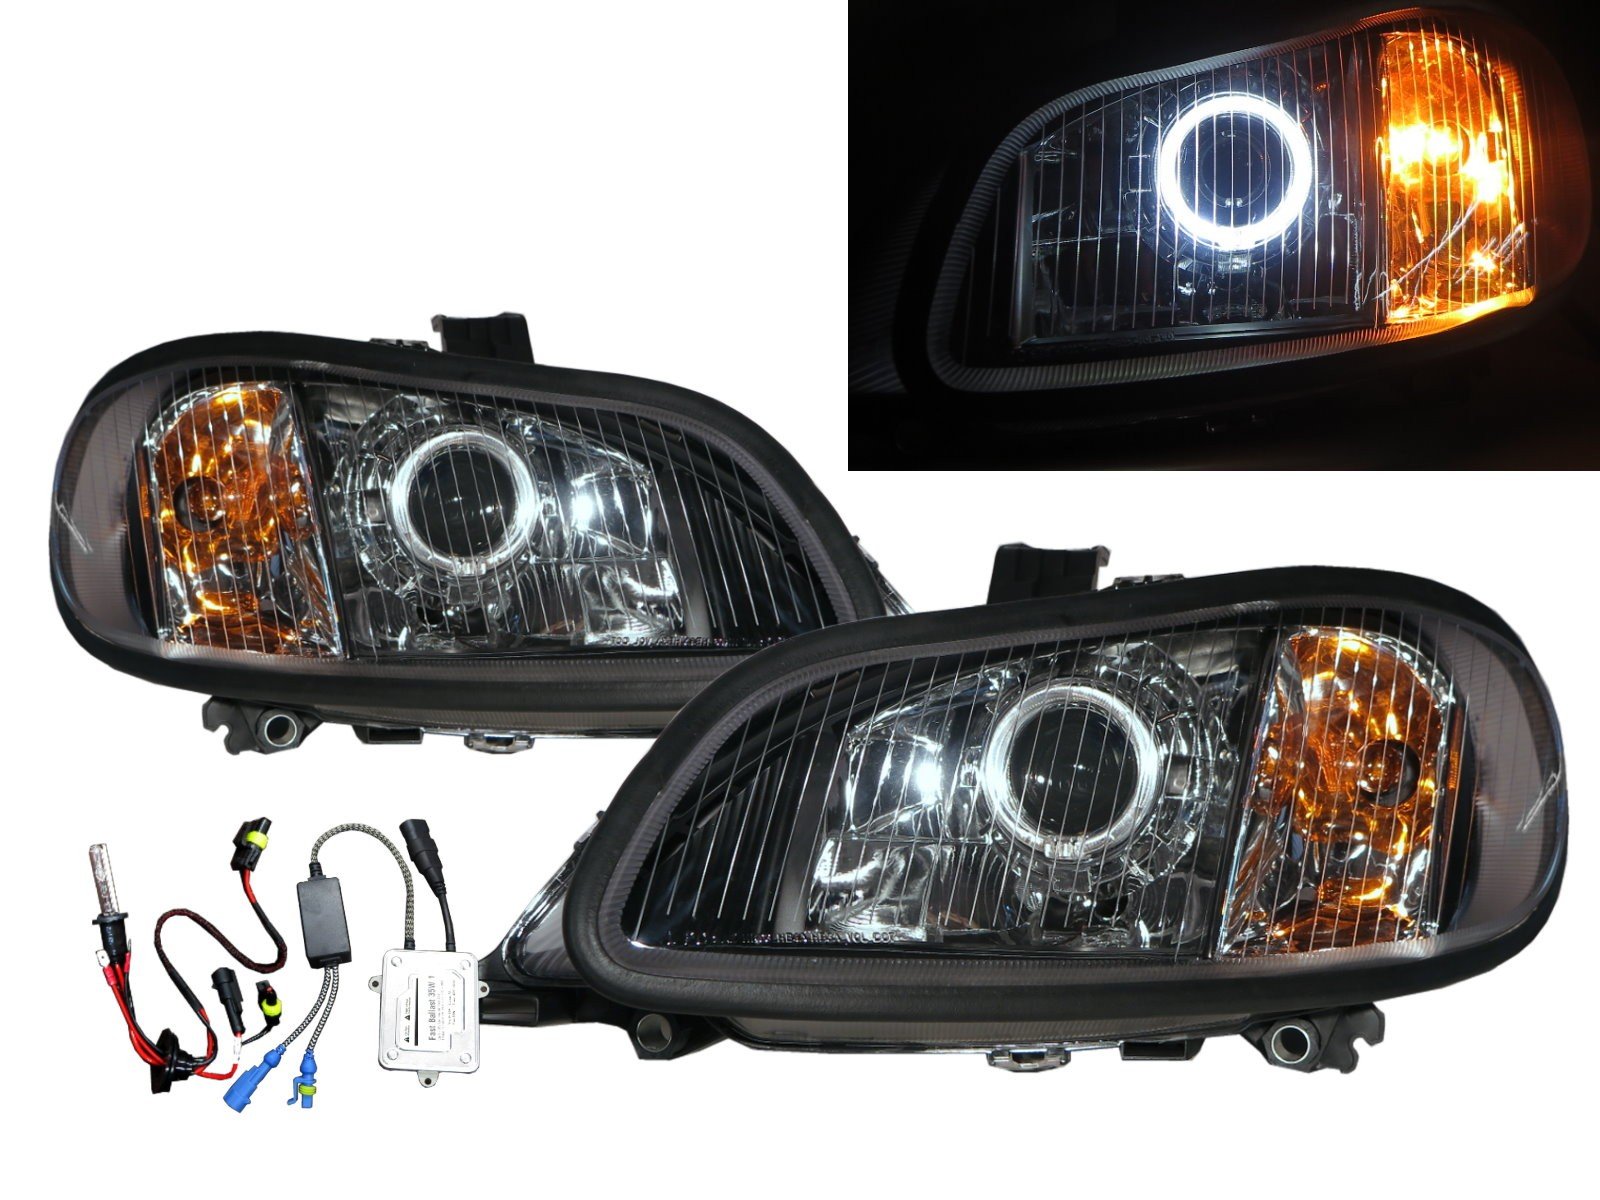 CrazyTheGod M2 2002-Present Truck 2D Guide LED Angel-Eye Projector HID Headlight Headlamp Black for Freightliner LHD